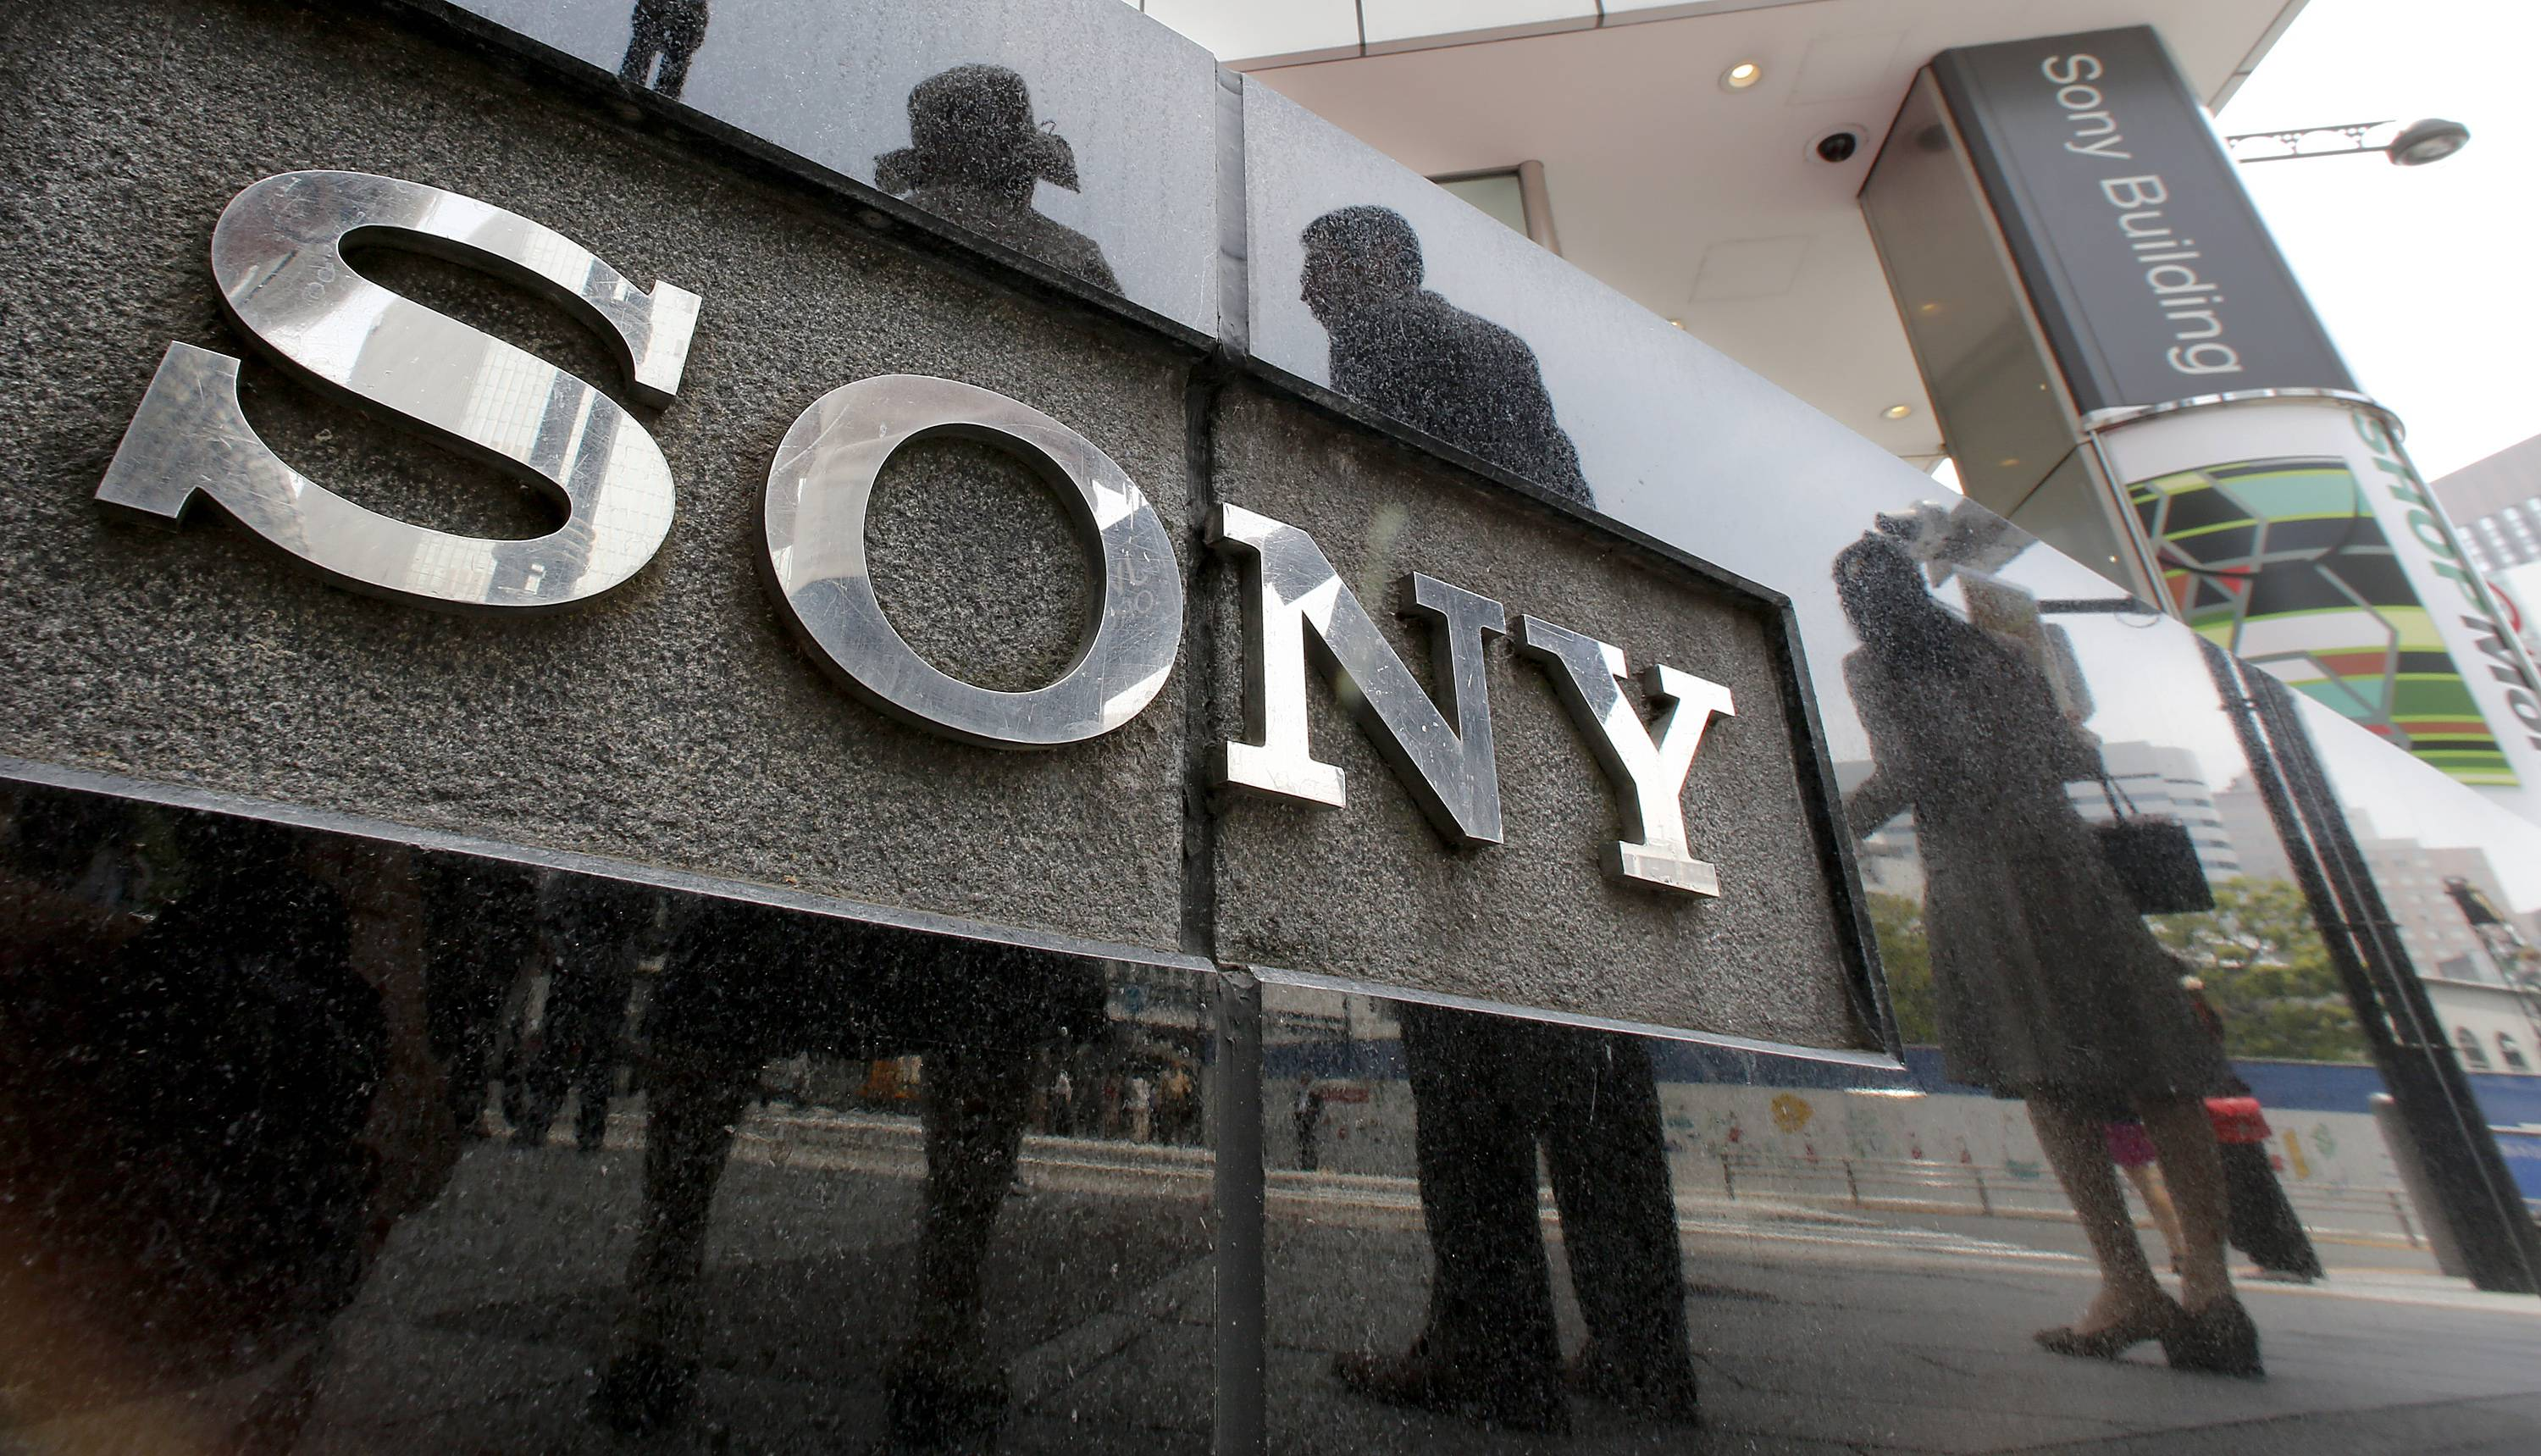 Hackers accessed accounts of My Sony Club, Sony Corp.'s loyalty program. Through the series of account break-ins, the perpetrators exchanged the points of 273 members for $7,415 worth of gift certificates.